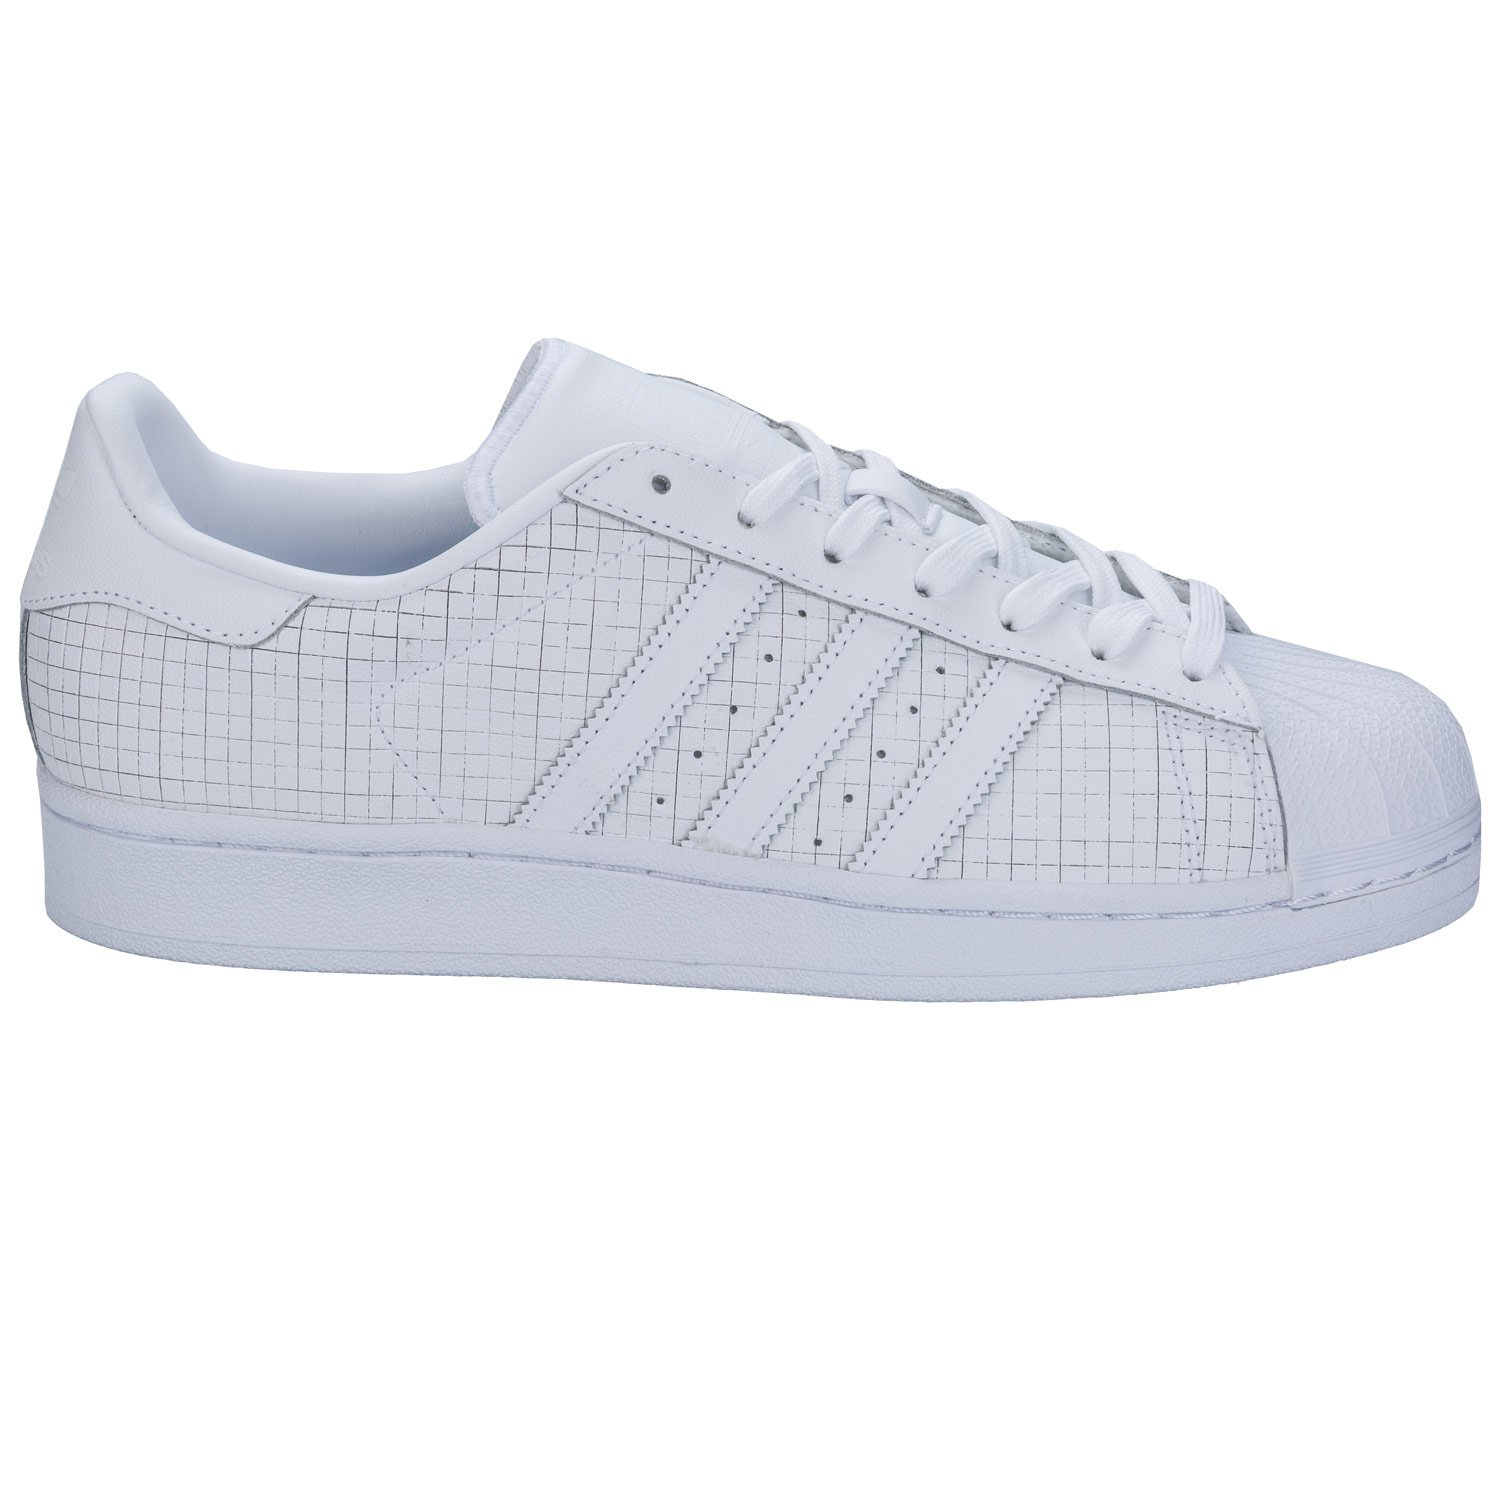 ADIDAS SUPERSTAR TOTAL WHITE AQ8334 - 44-2-3, BIANCO